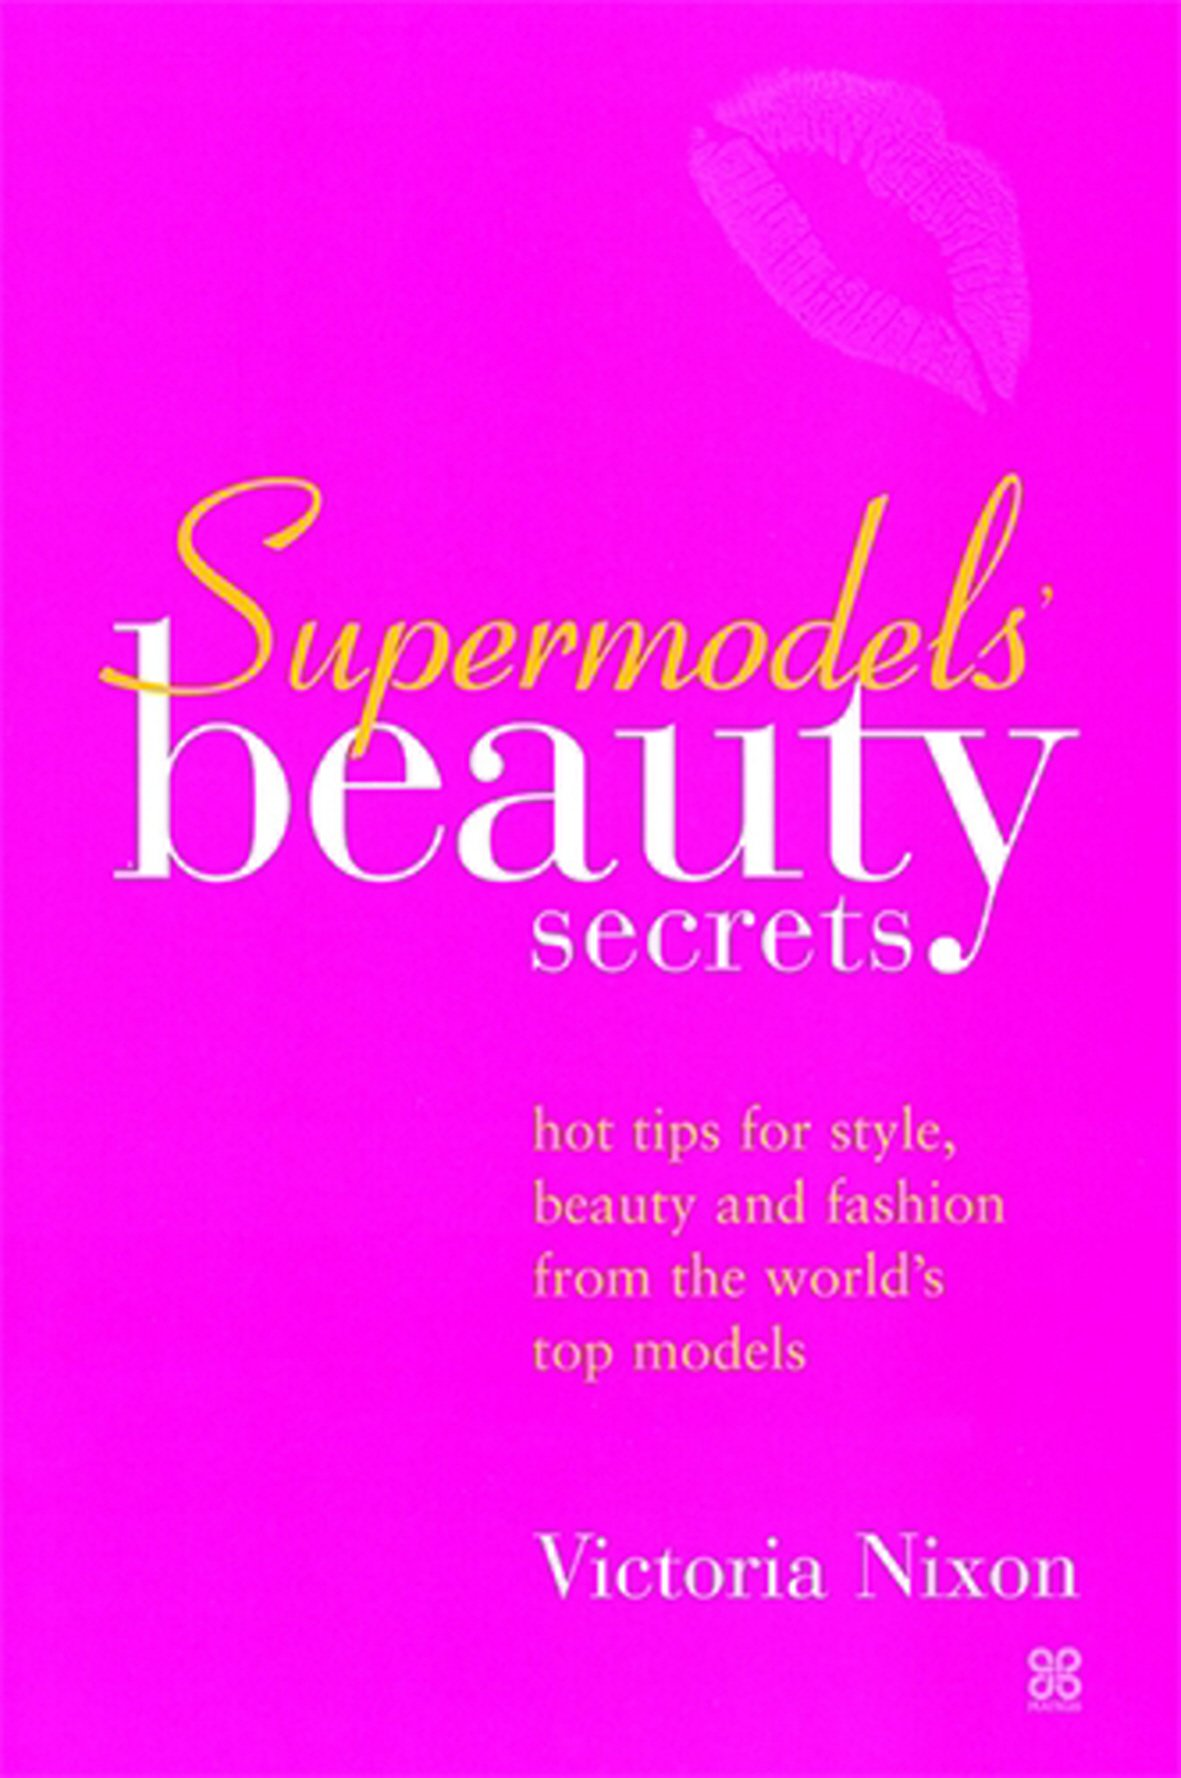 Supermodels' Beauty Secrets: Hot tips for style, beauty and fashion from the world's top models (Top Tips for Style, Beauty and Fashion)